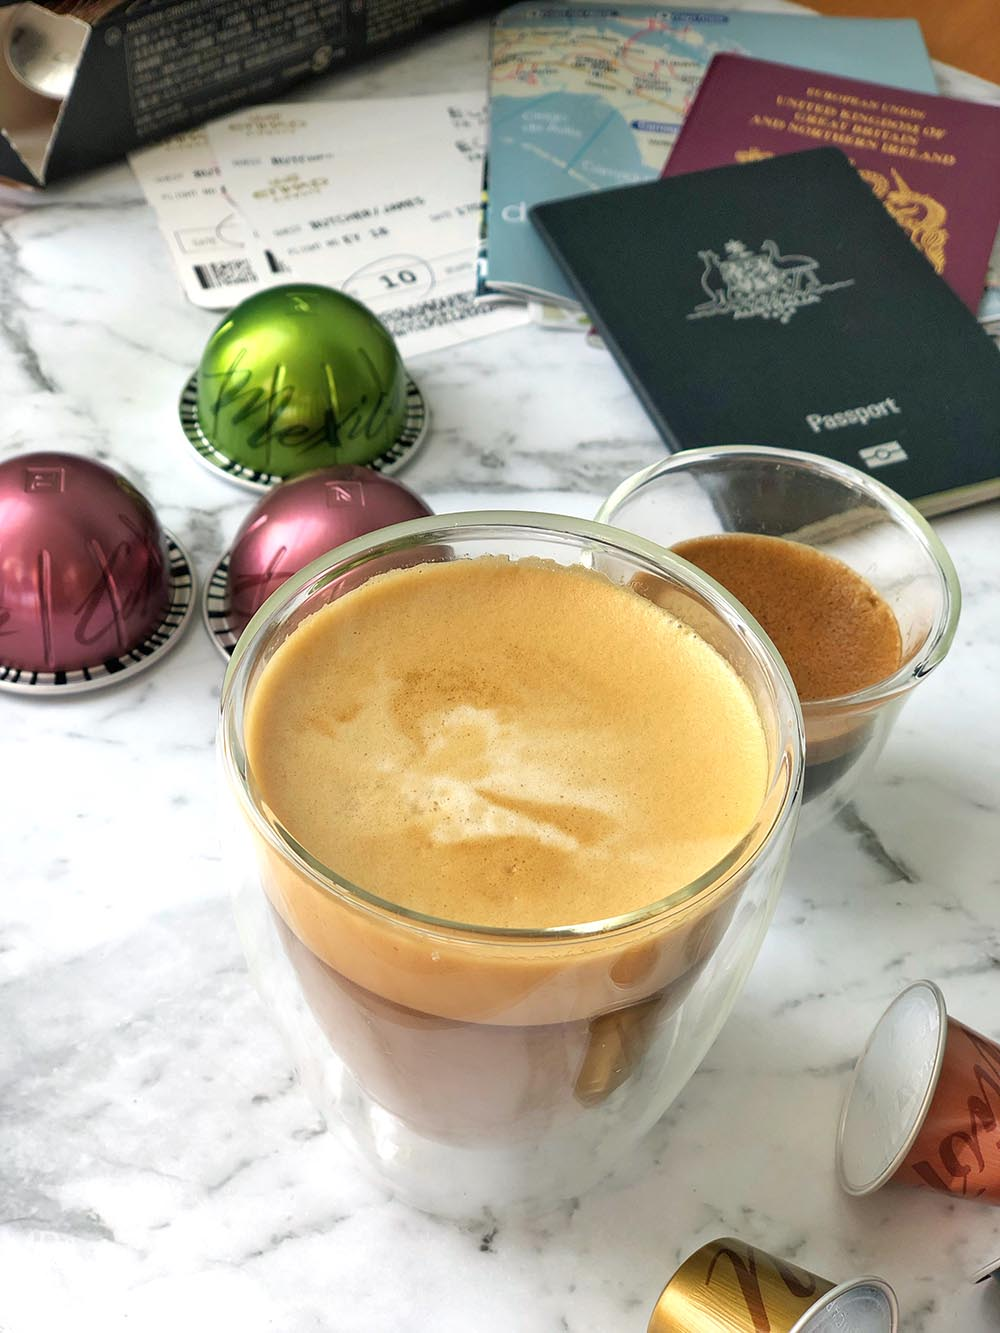 Nespresso Master Origins travel